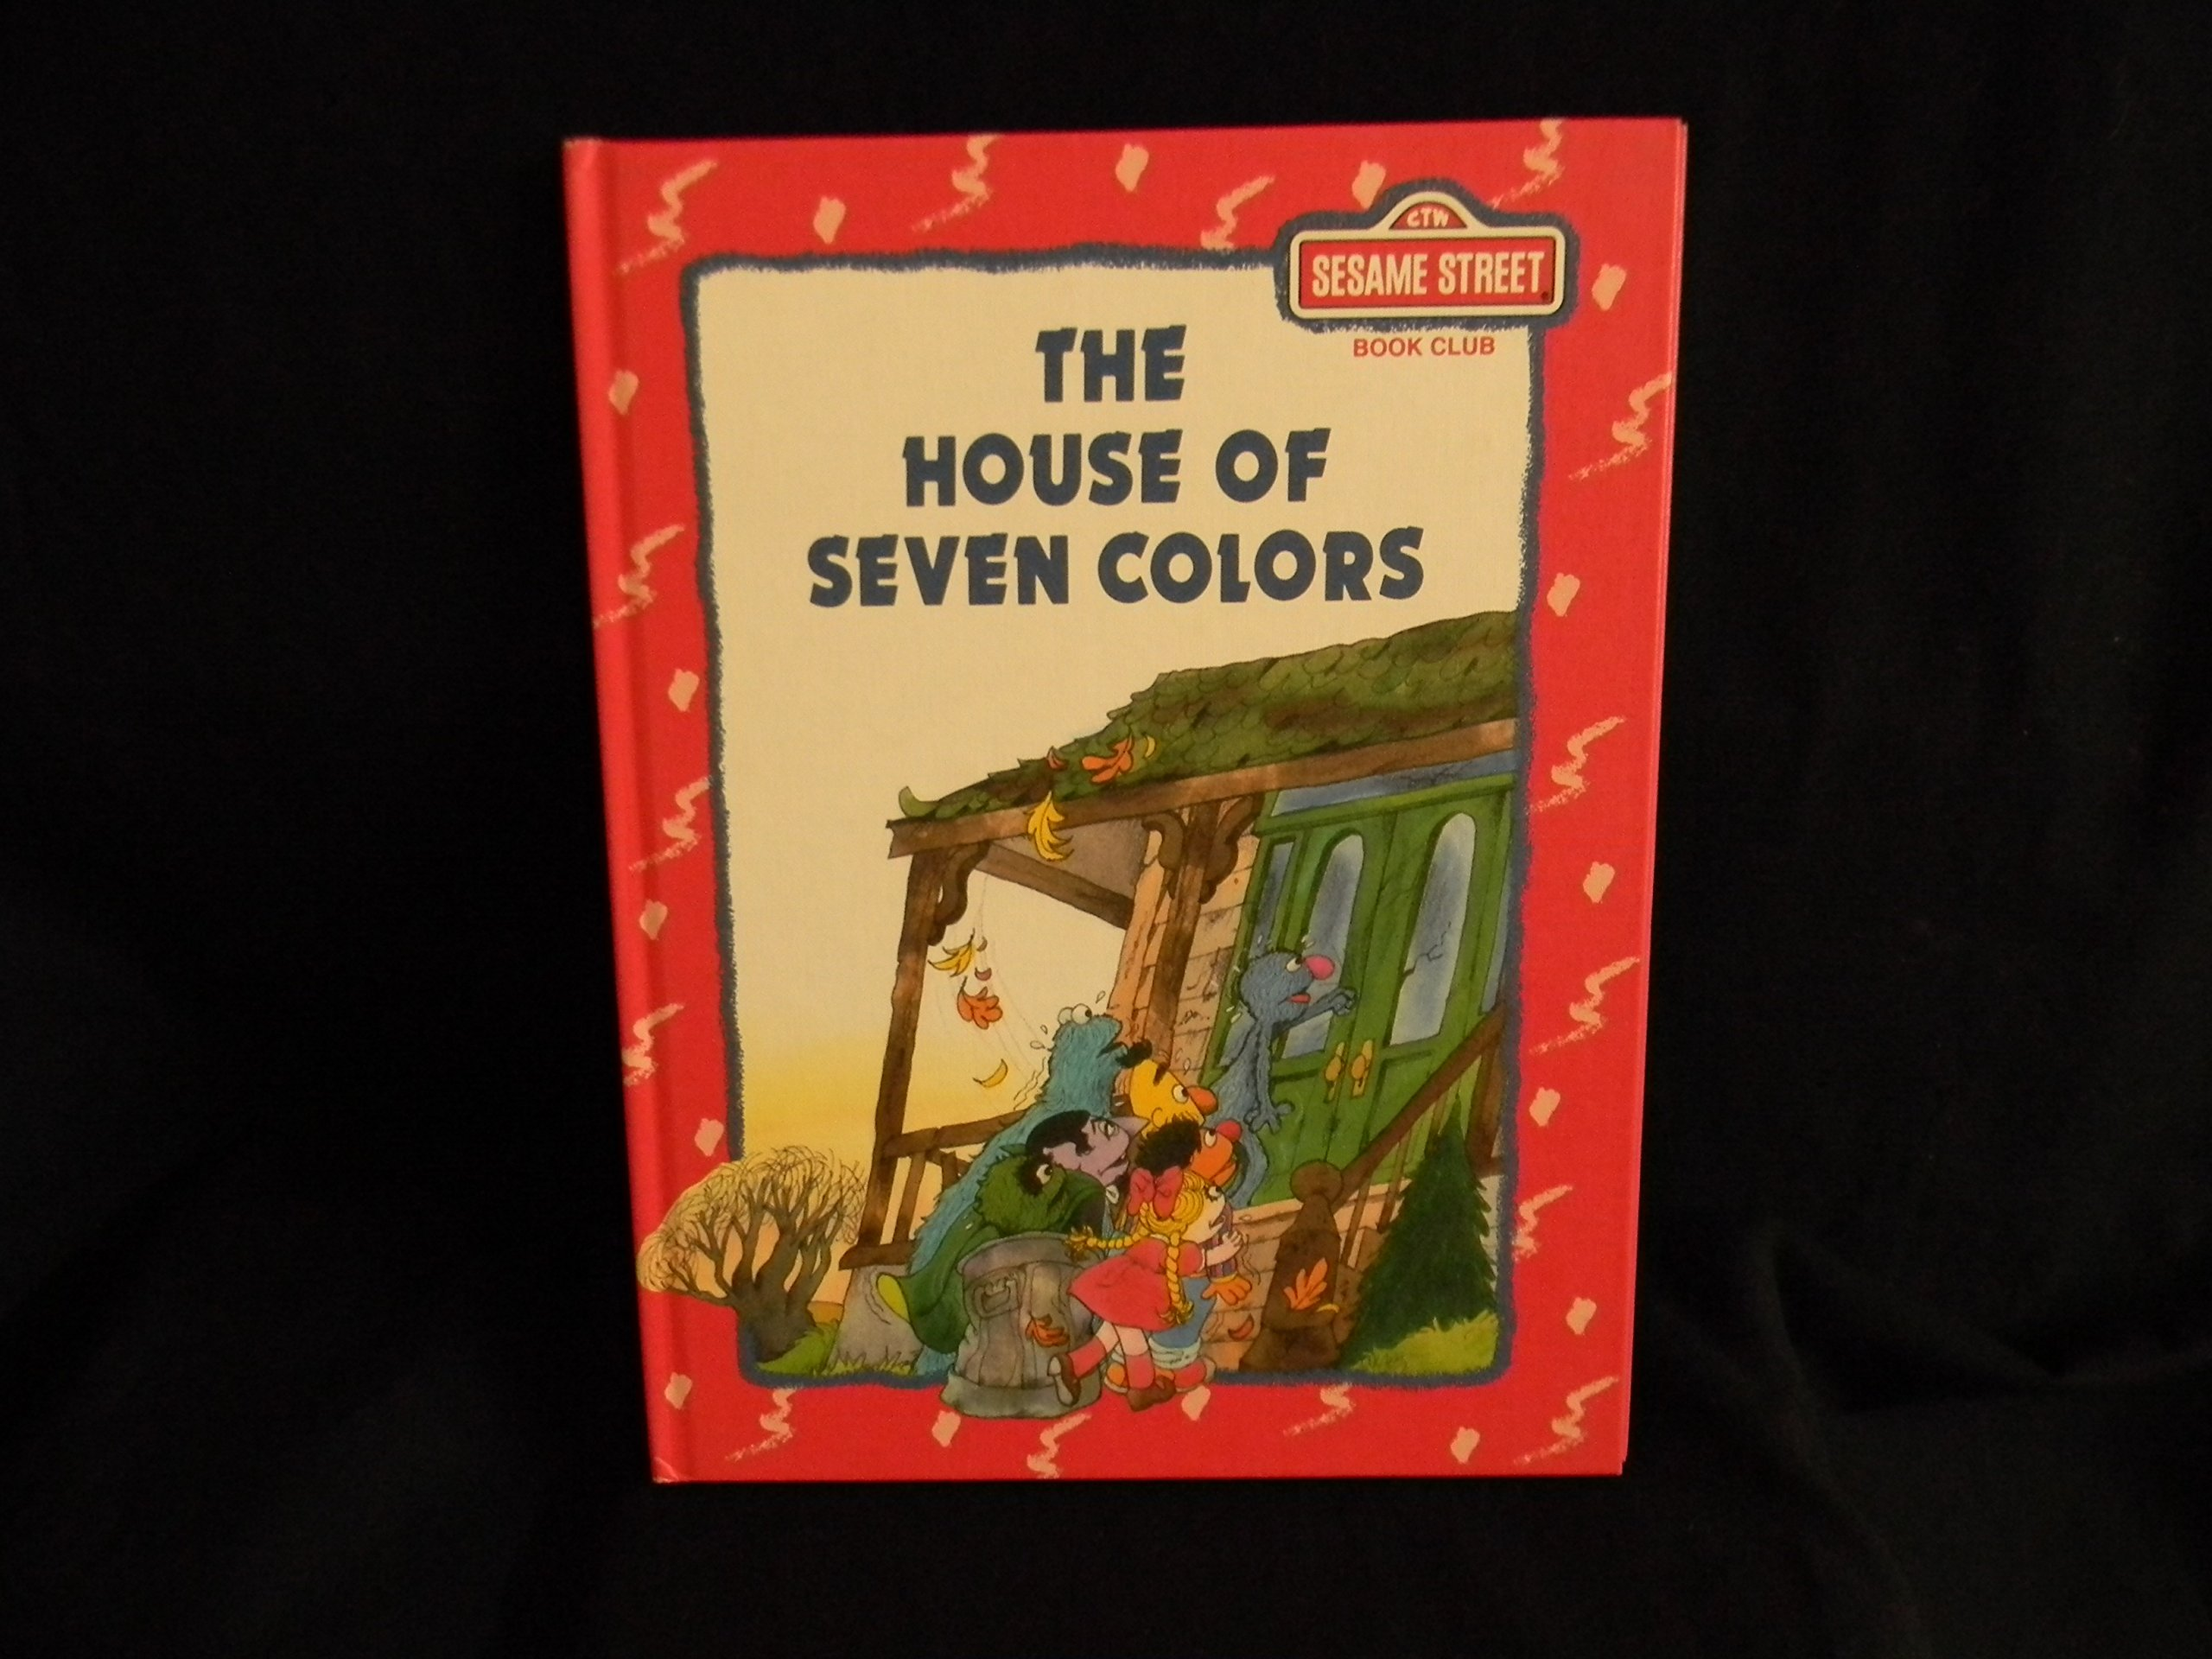 The house of seven colors sesame street book club madeline sunshine amazon com books